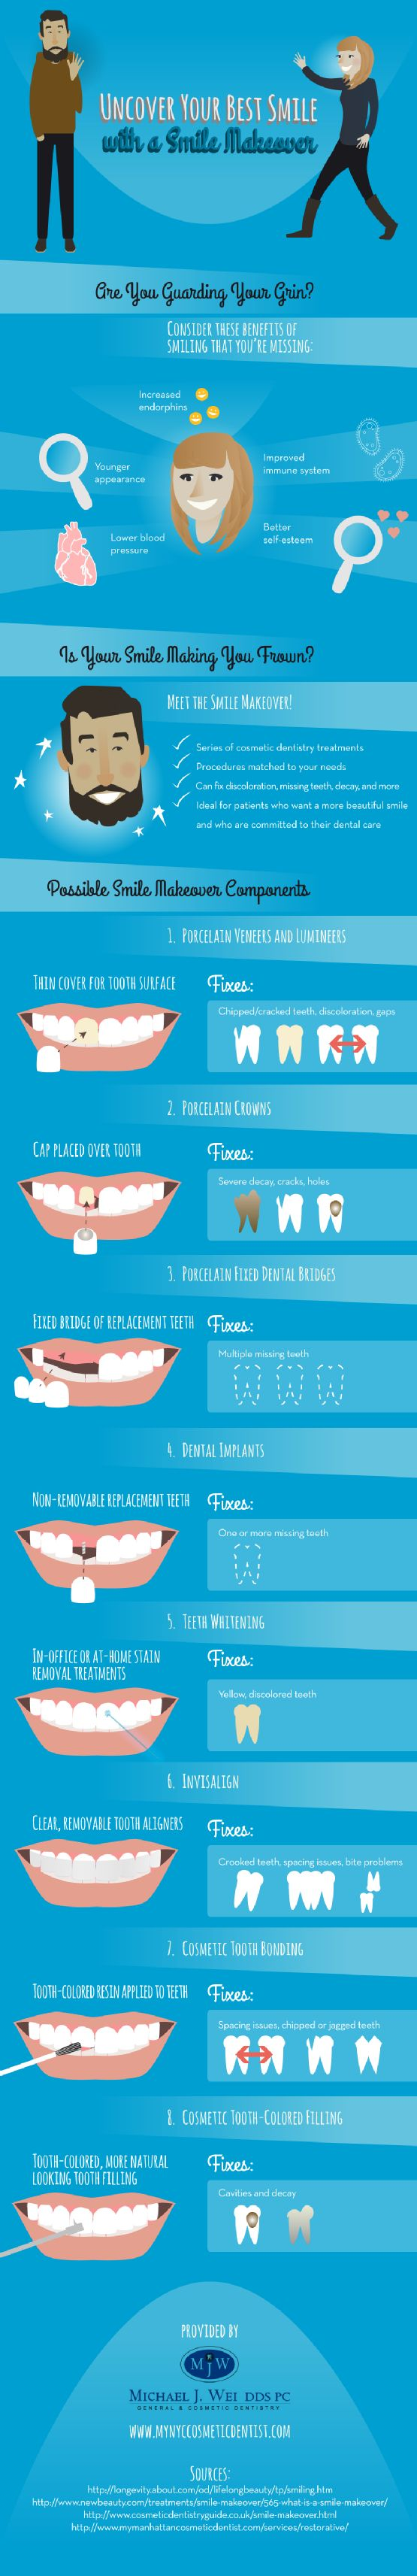 Porcelain veneers and Lumineers are thin covers for teeth surfaces. These can fix chipped or cracked teeth, discoloration, and gaps. Read more about smile makeover treatment options by taking a look at this infographic from a Manhattan cosmetic dentist.